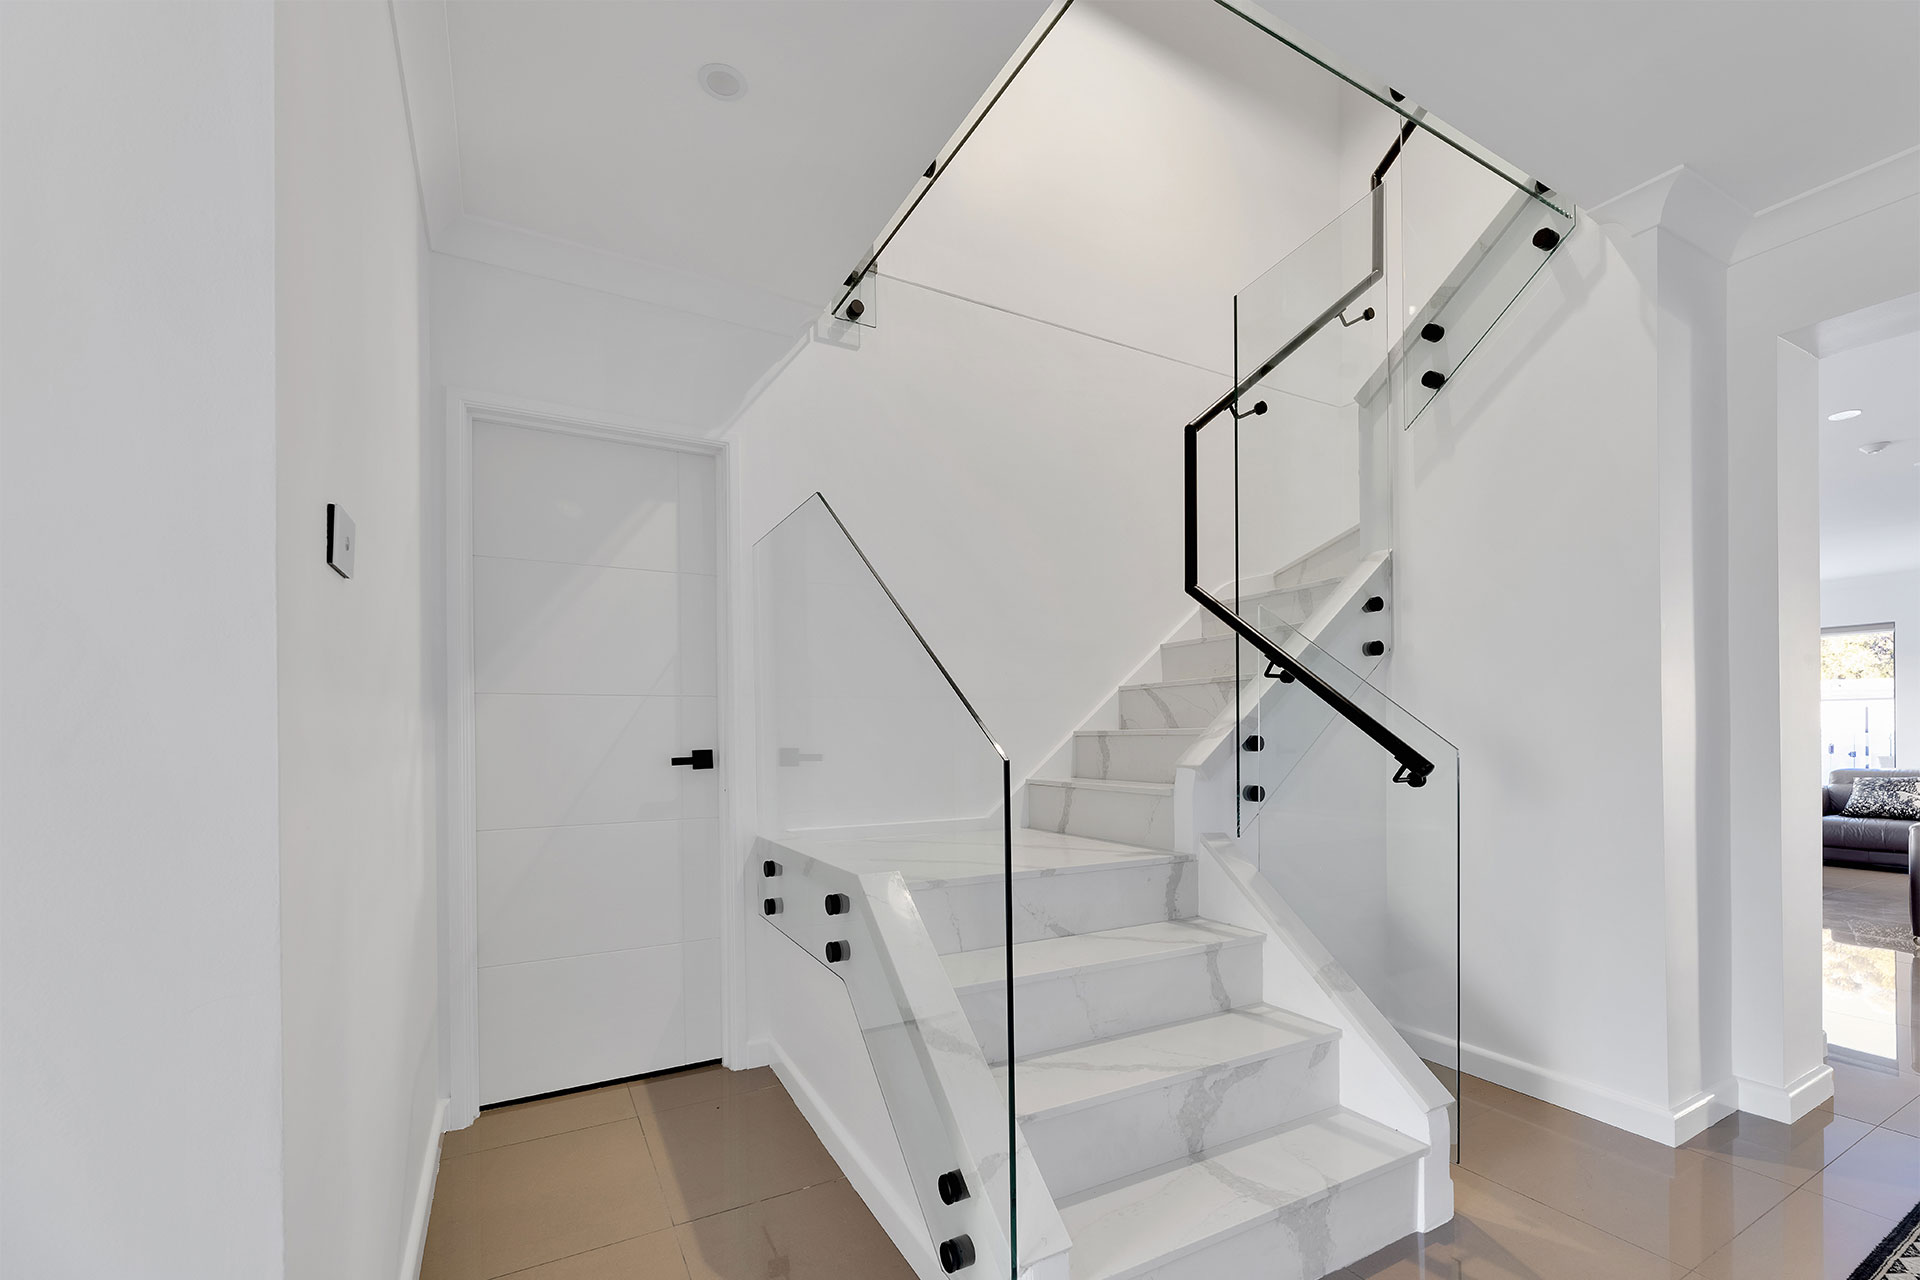 https://starwardrobes.com.au/wp-content/uploads/2021/07/about-staircase-image.jpg